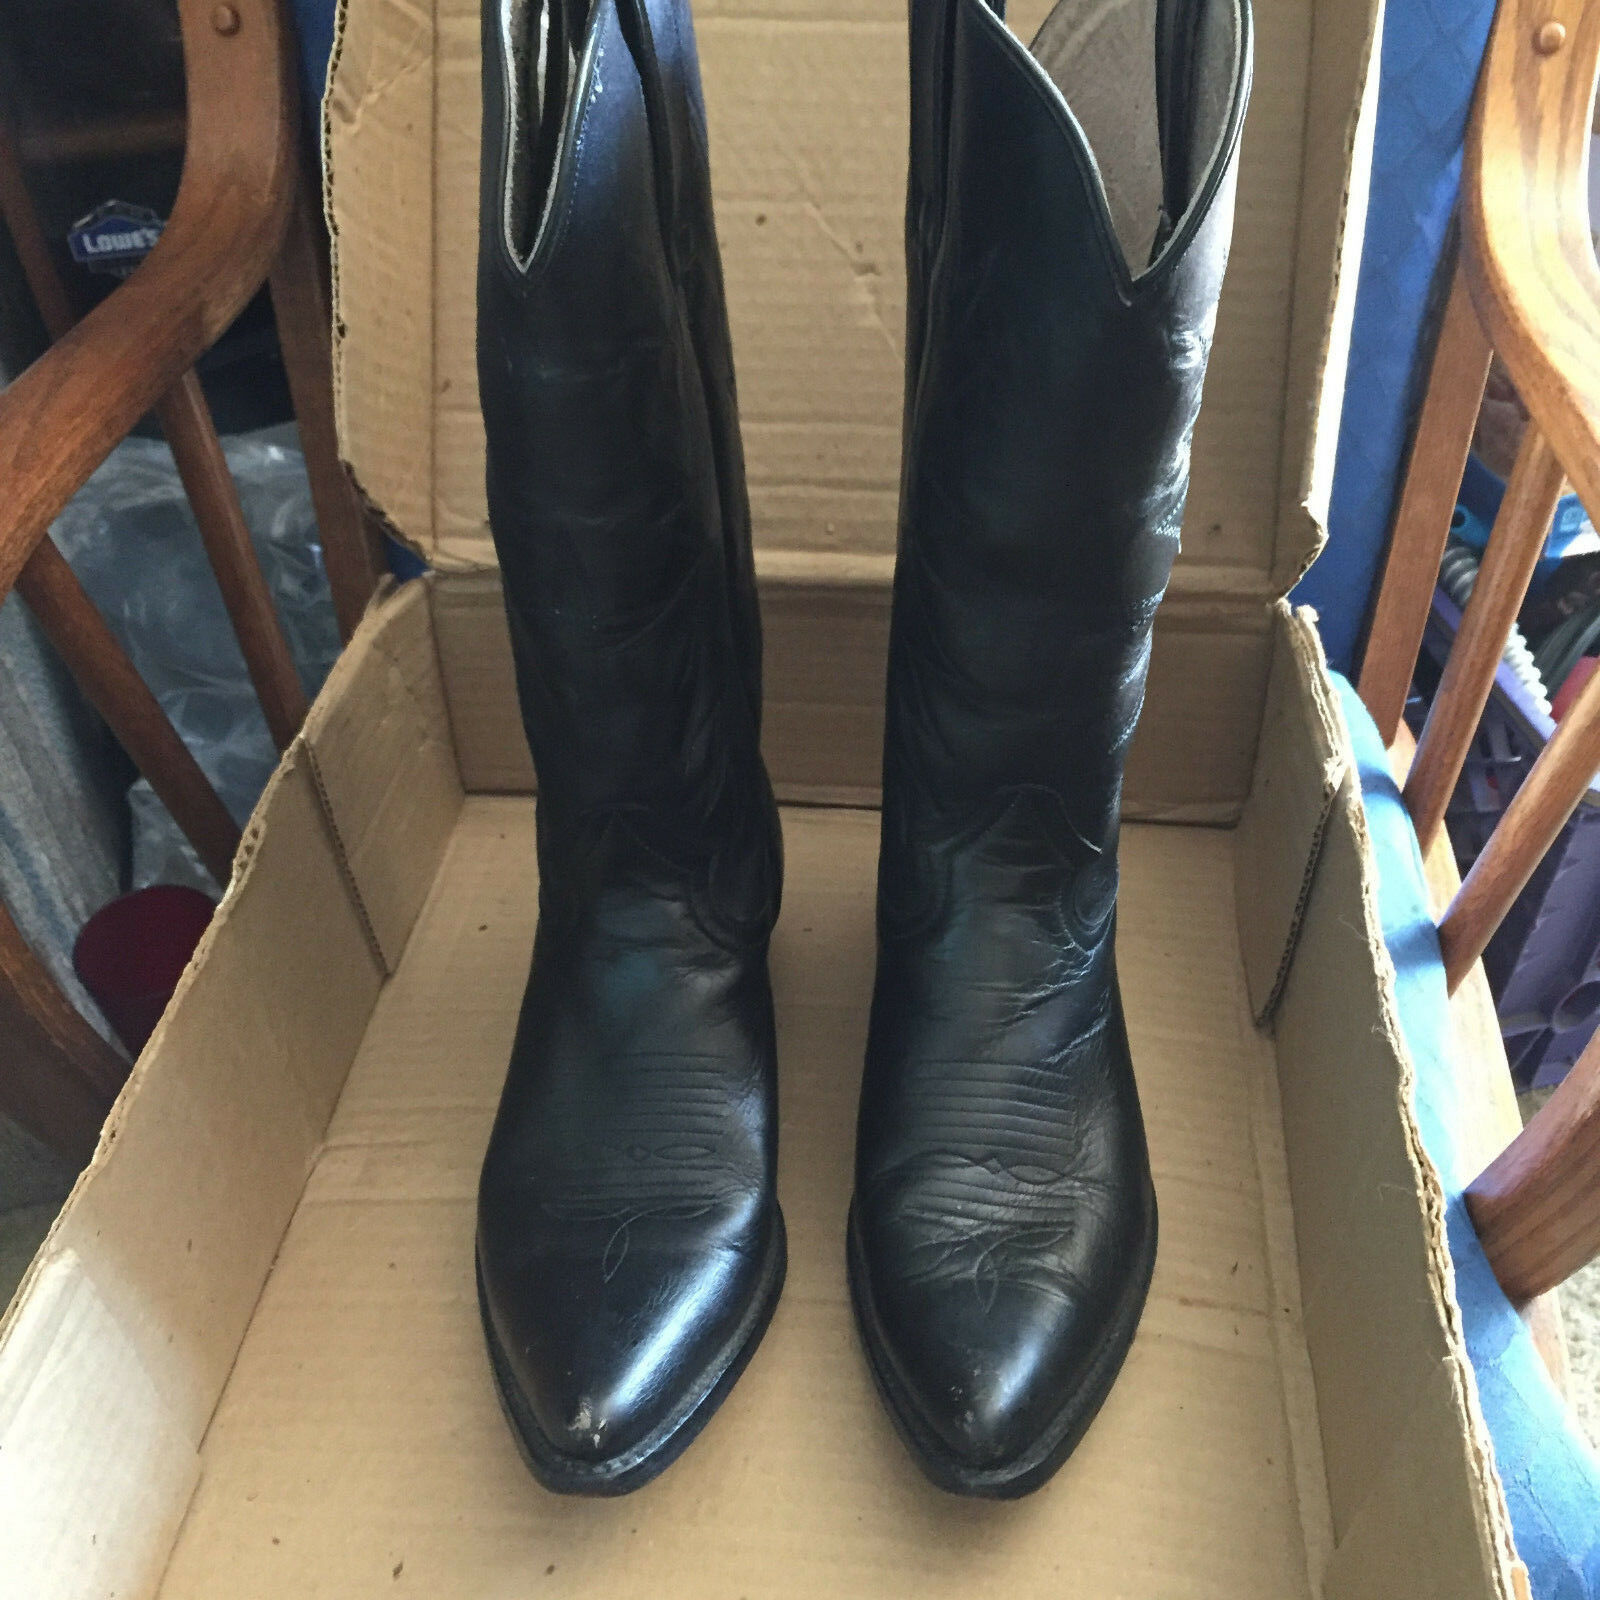 Botas Tejas woman Cowboy boots 9.0 Mexican. Excellent condition! size 26